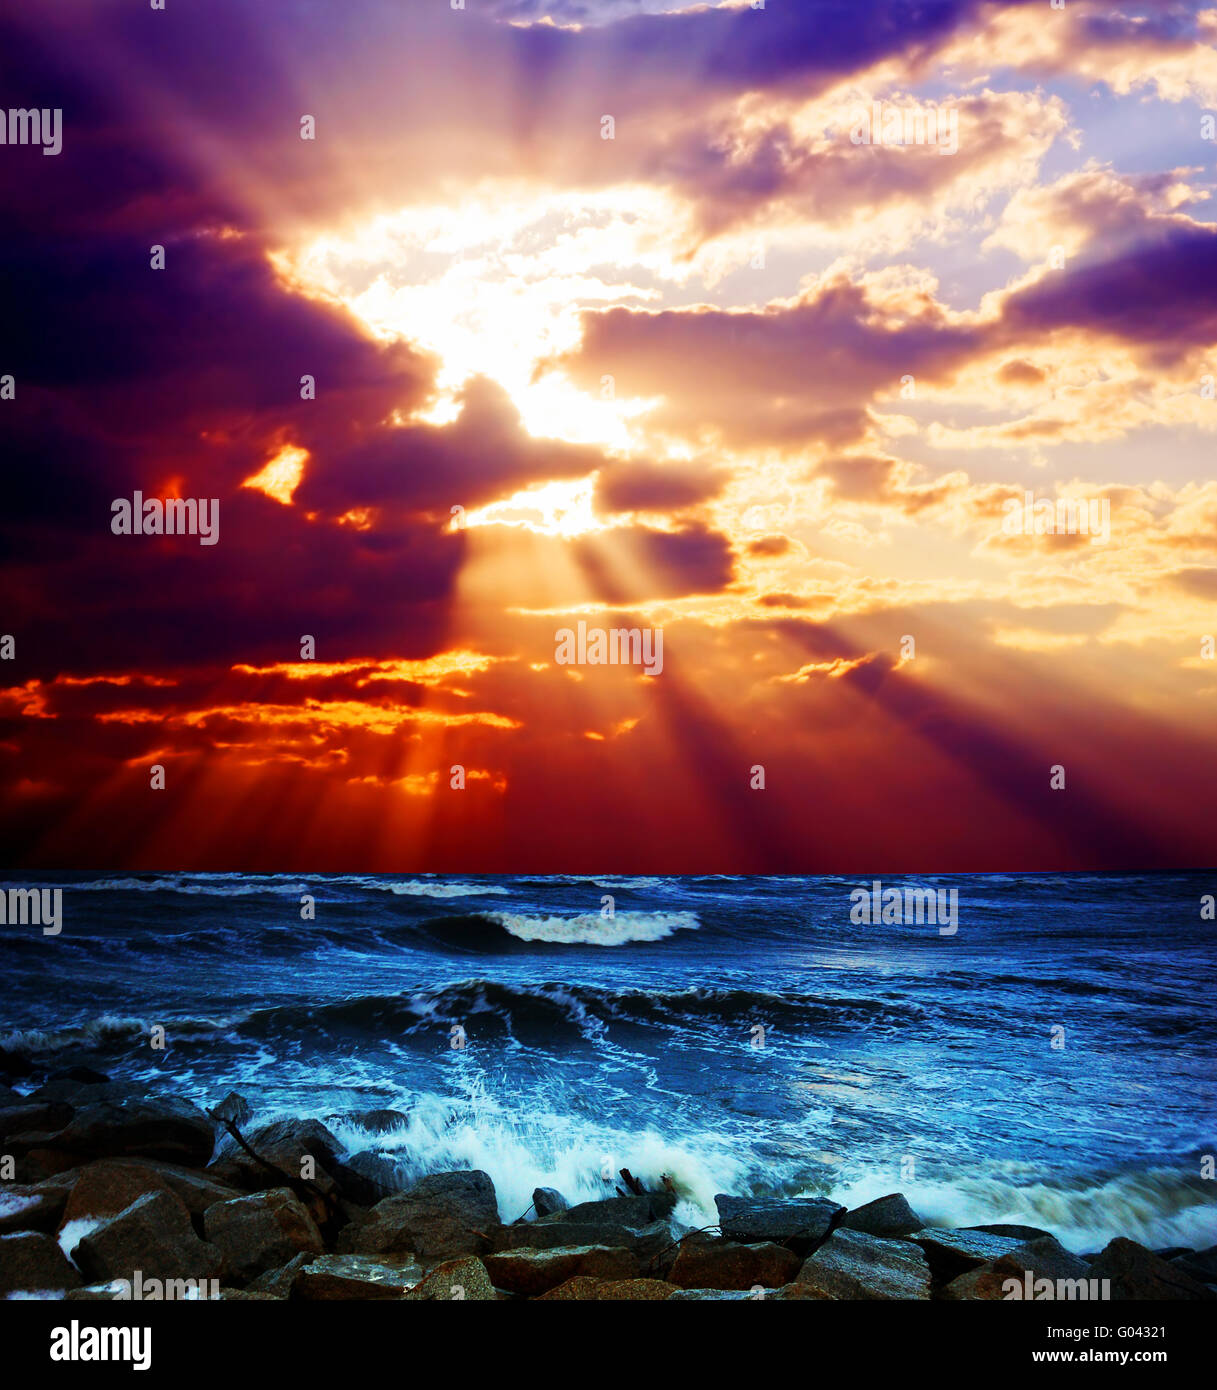 Surrealistic sunset seascape. Beautiful background - Stock Image